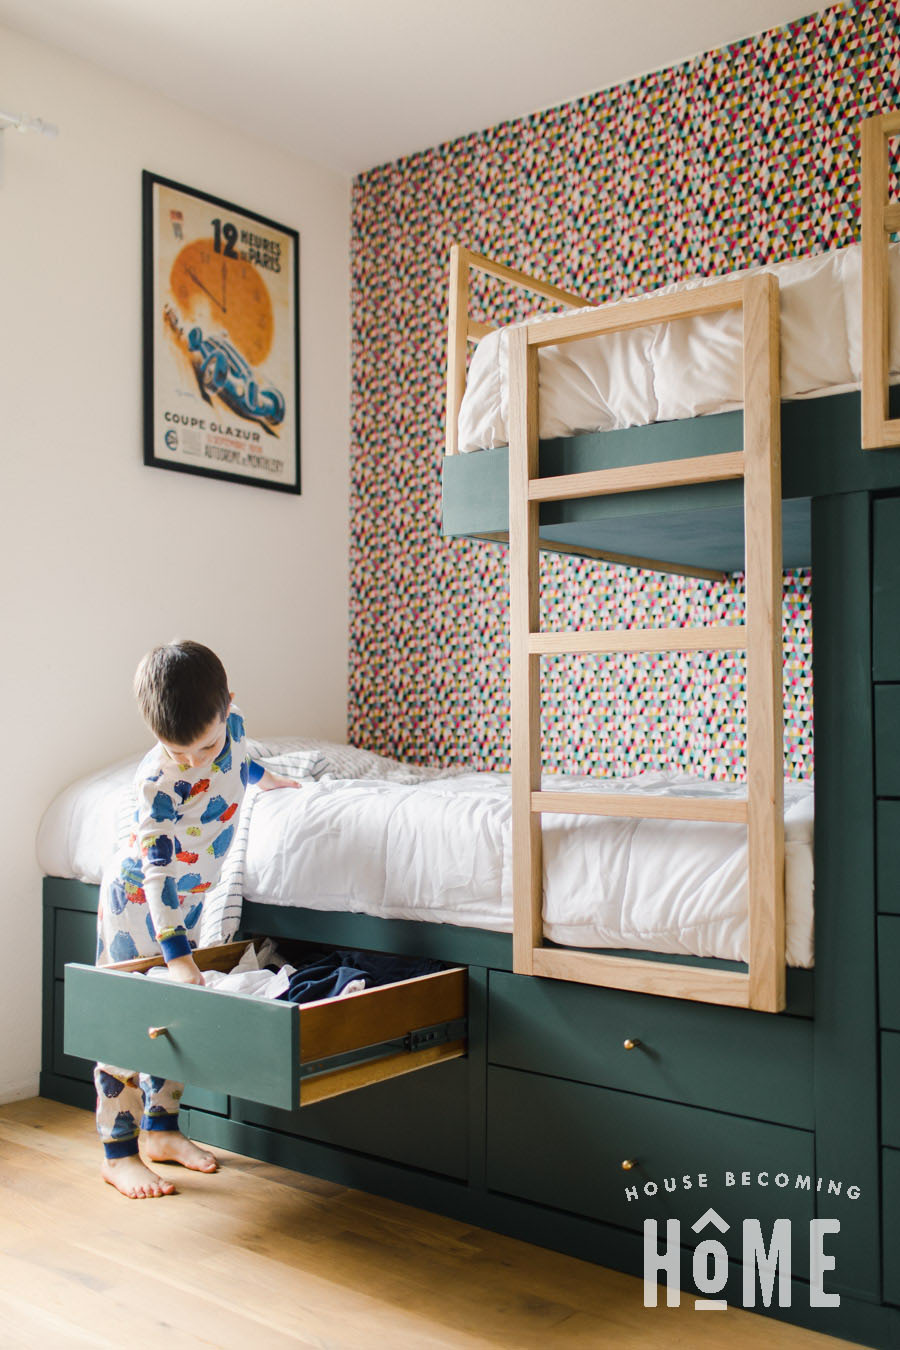 Storage Drawers in Built in Bunk Beds Simphome.com .jpg